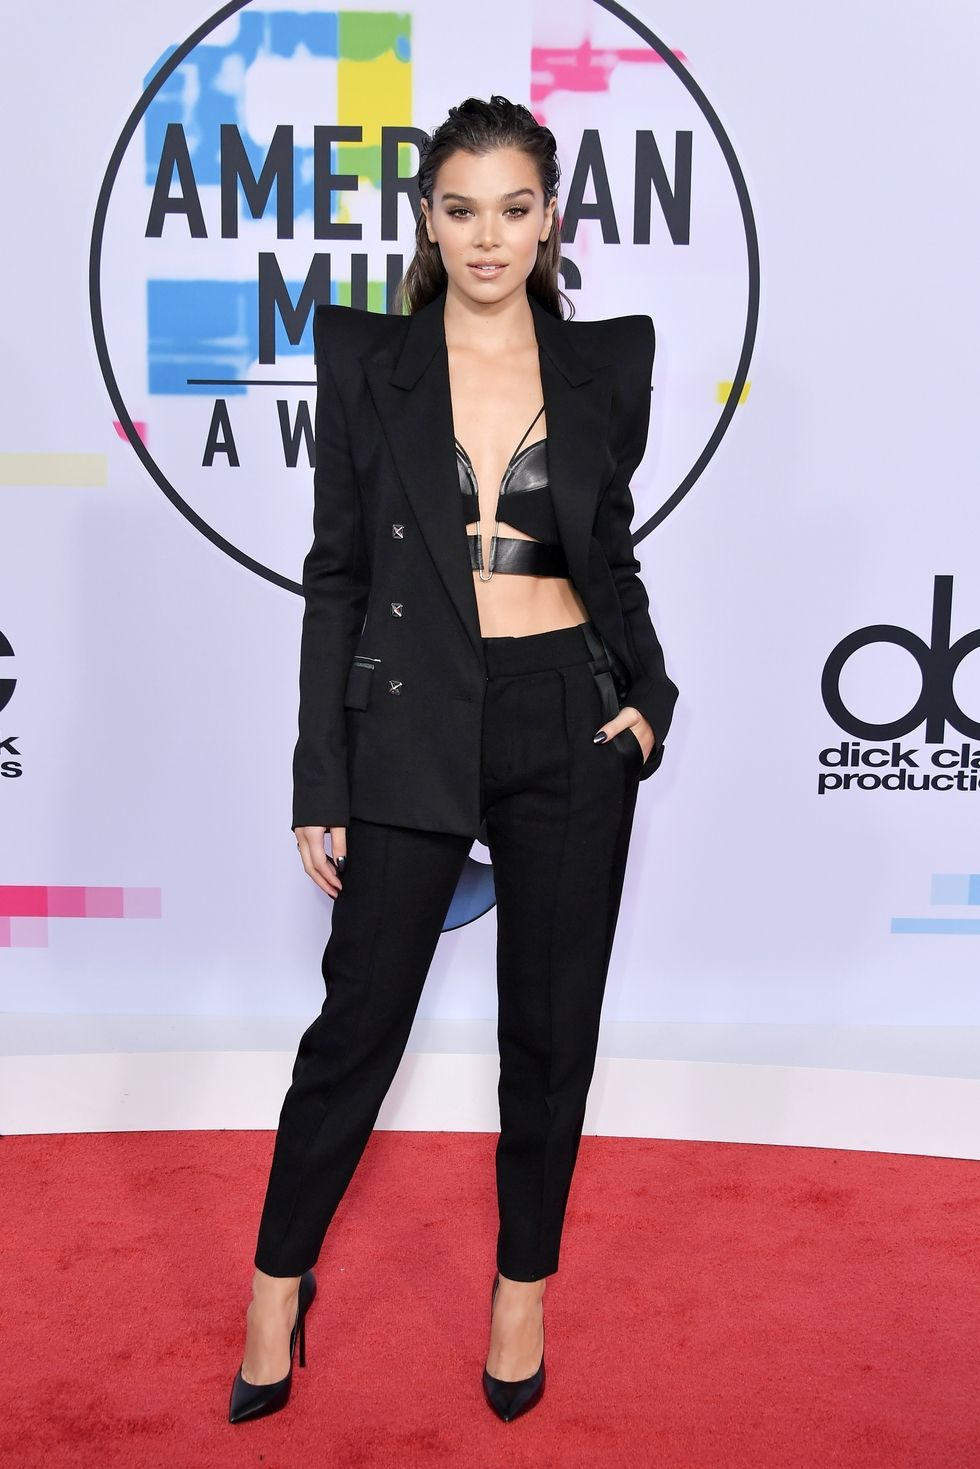 This Look Is A Little Daring For Me, But She Looked Fabulous. I Love When  Women Are Daring Enough To Wear Pants On The Red Carpet ...